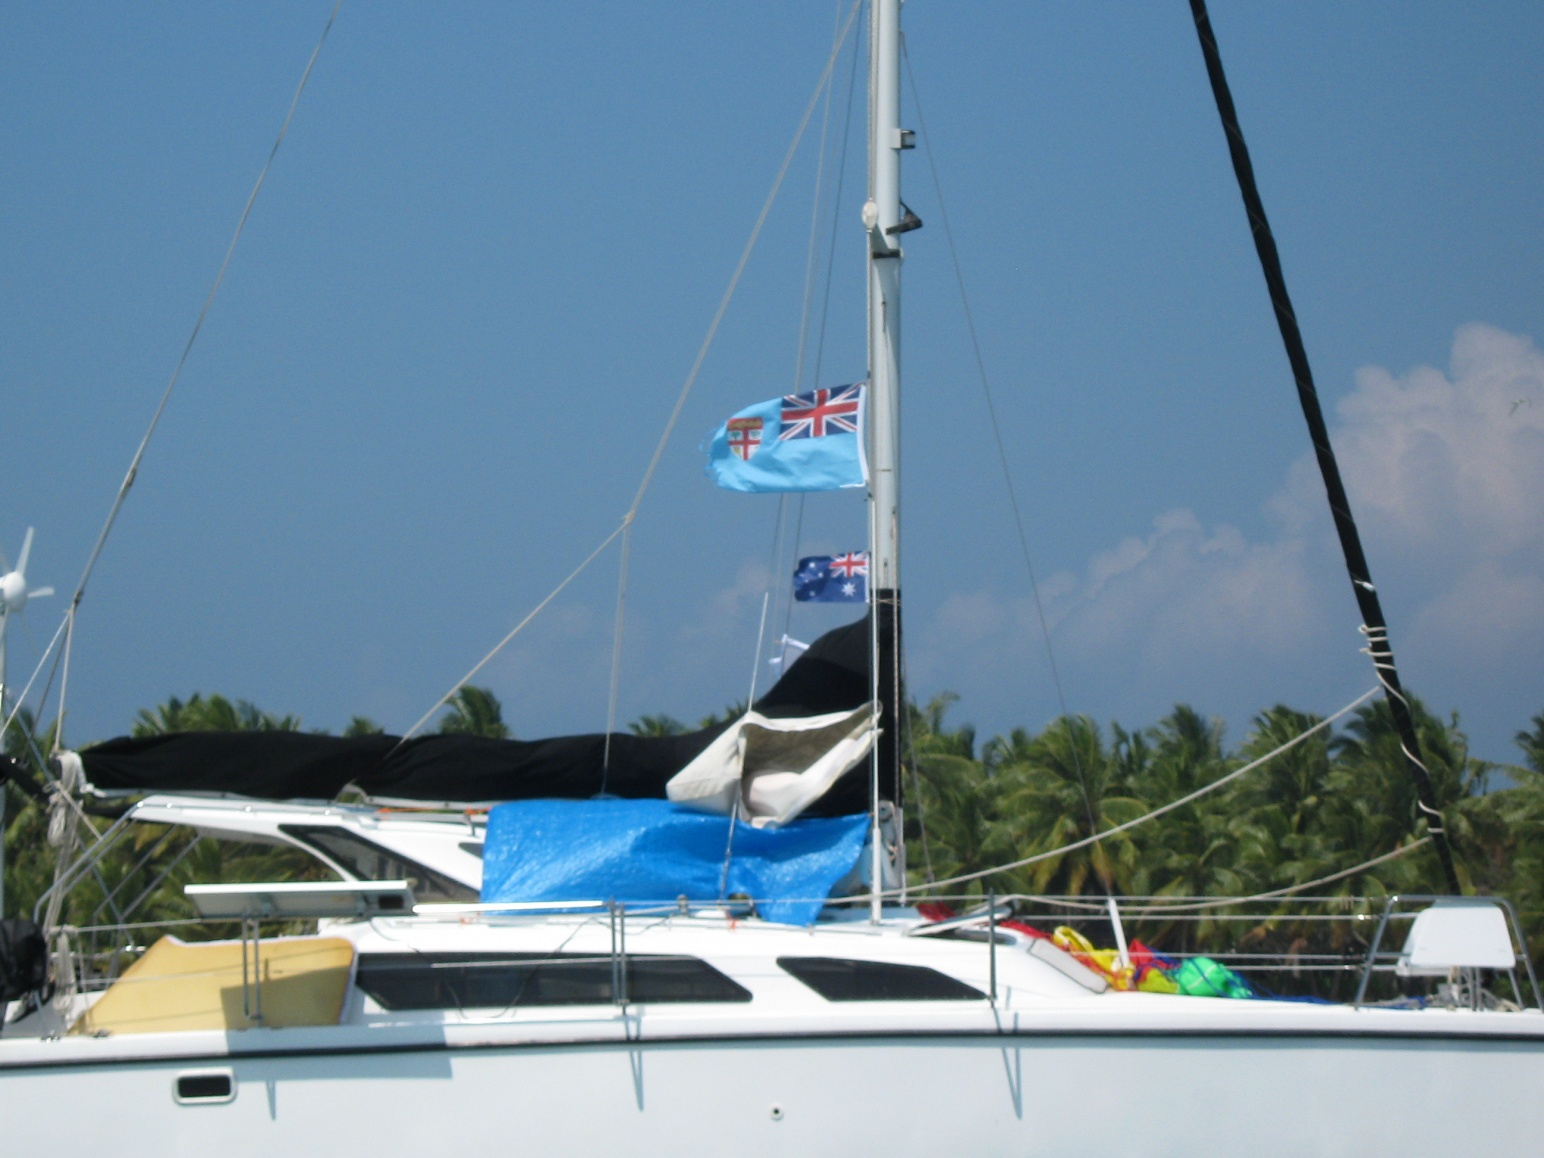 Click image for larger version  Name:Heathers piccys Fiji Sailchute Boat Us 250.jpg Views:134 Size:402.4 KB ID:44144